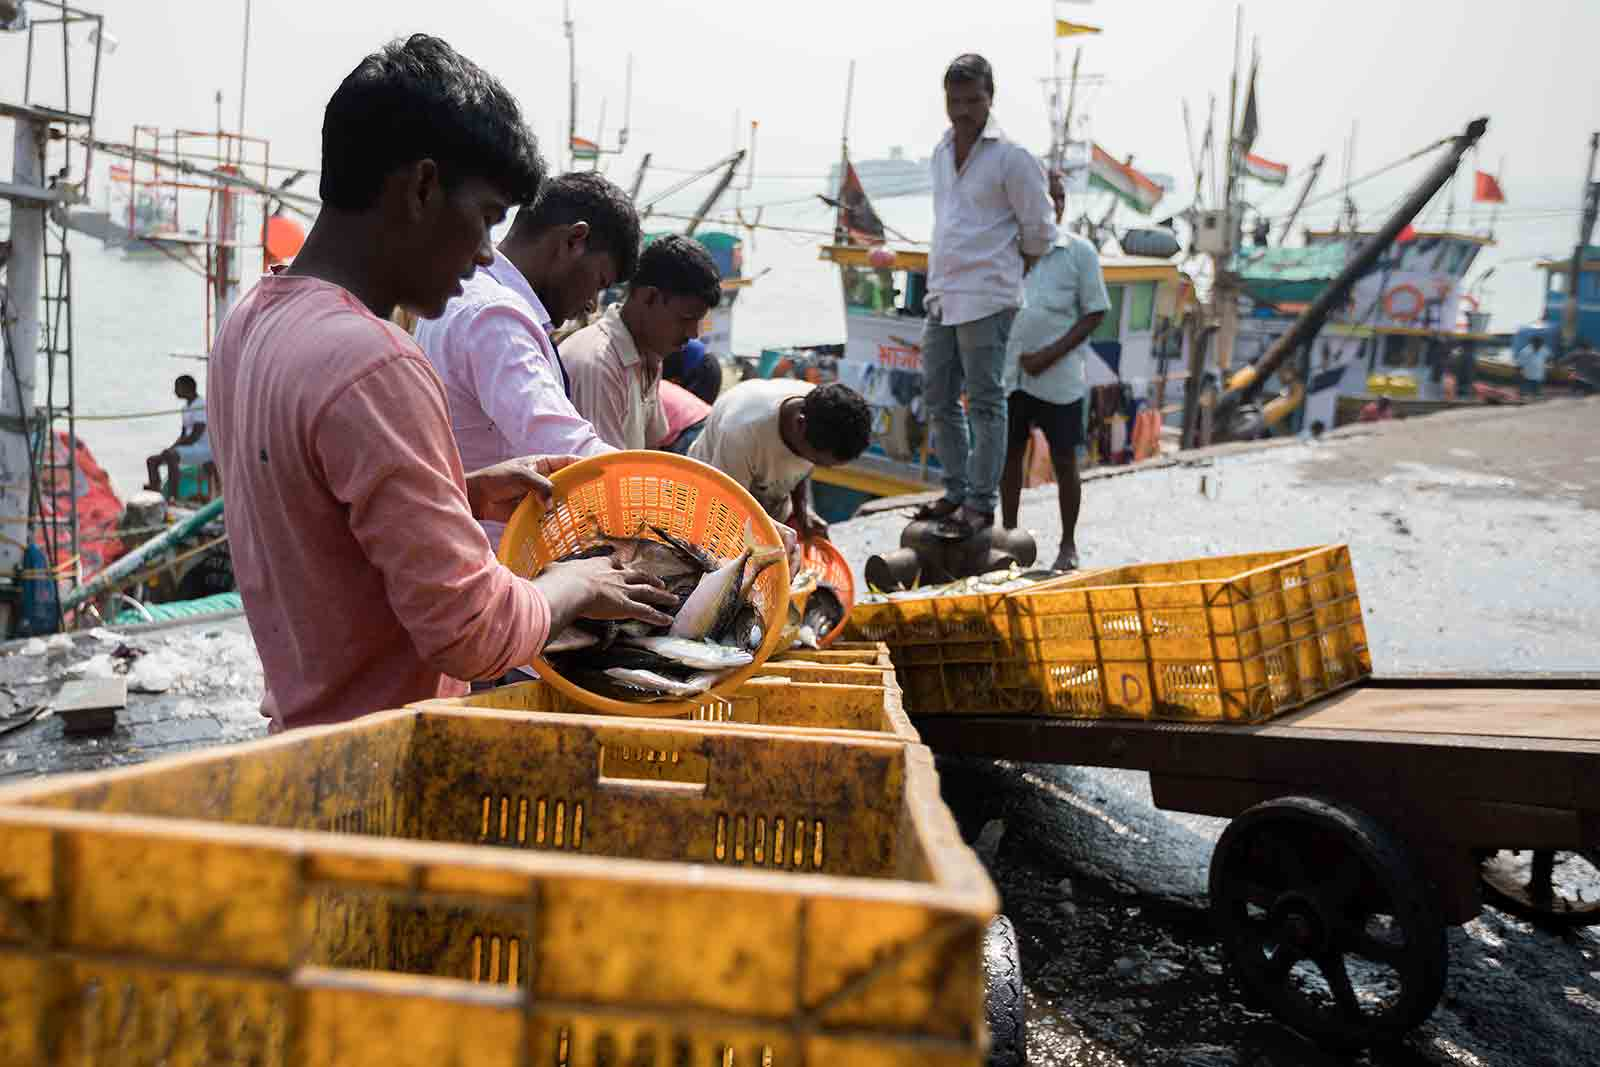 The sheer variety of fish on offer at Sassoon Docks is mind-blowing: red snapper, tuna, octopus, baby sharks, cuttlefish, blue crabs and stingray are some of the fish you can expect to find here.